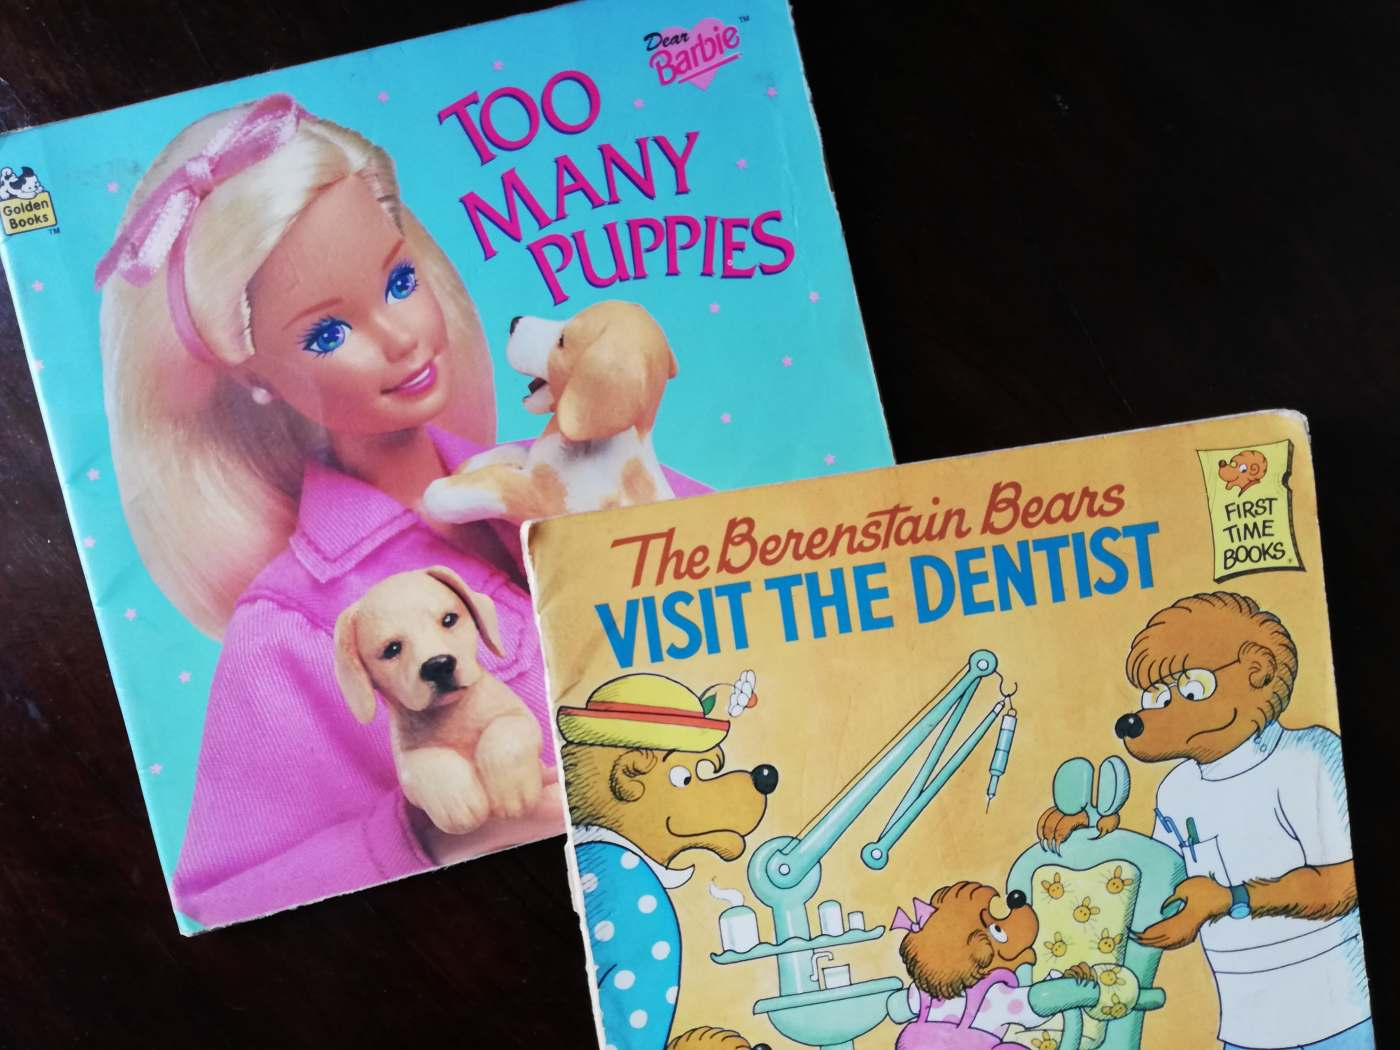 Childhood Reads - Barbie and Berenstein Bears - Bookbed